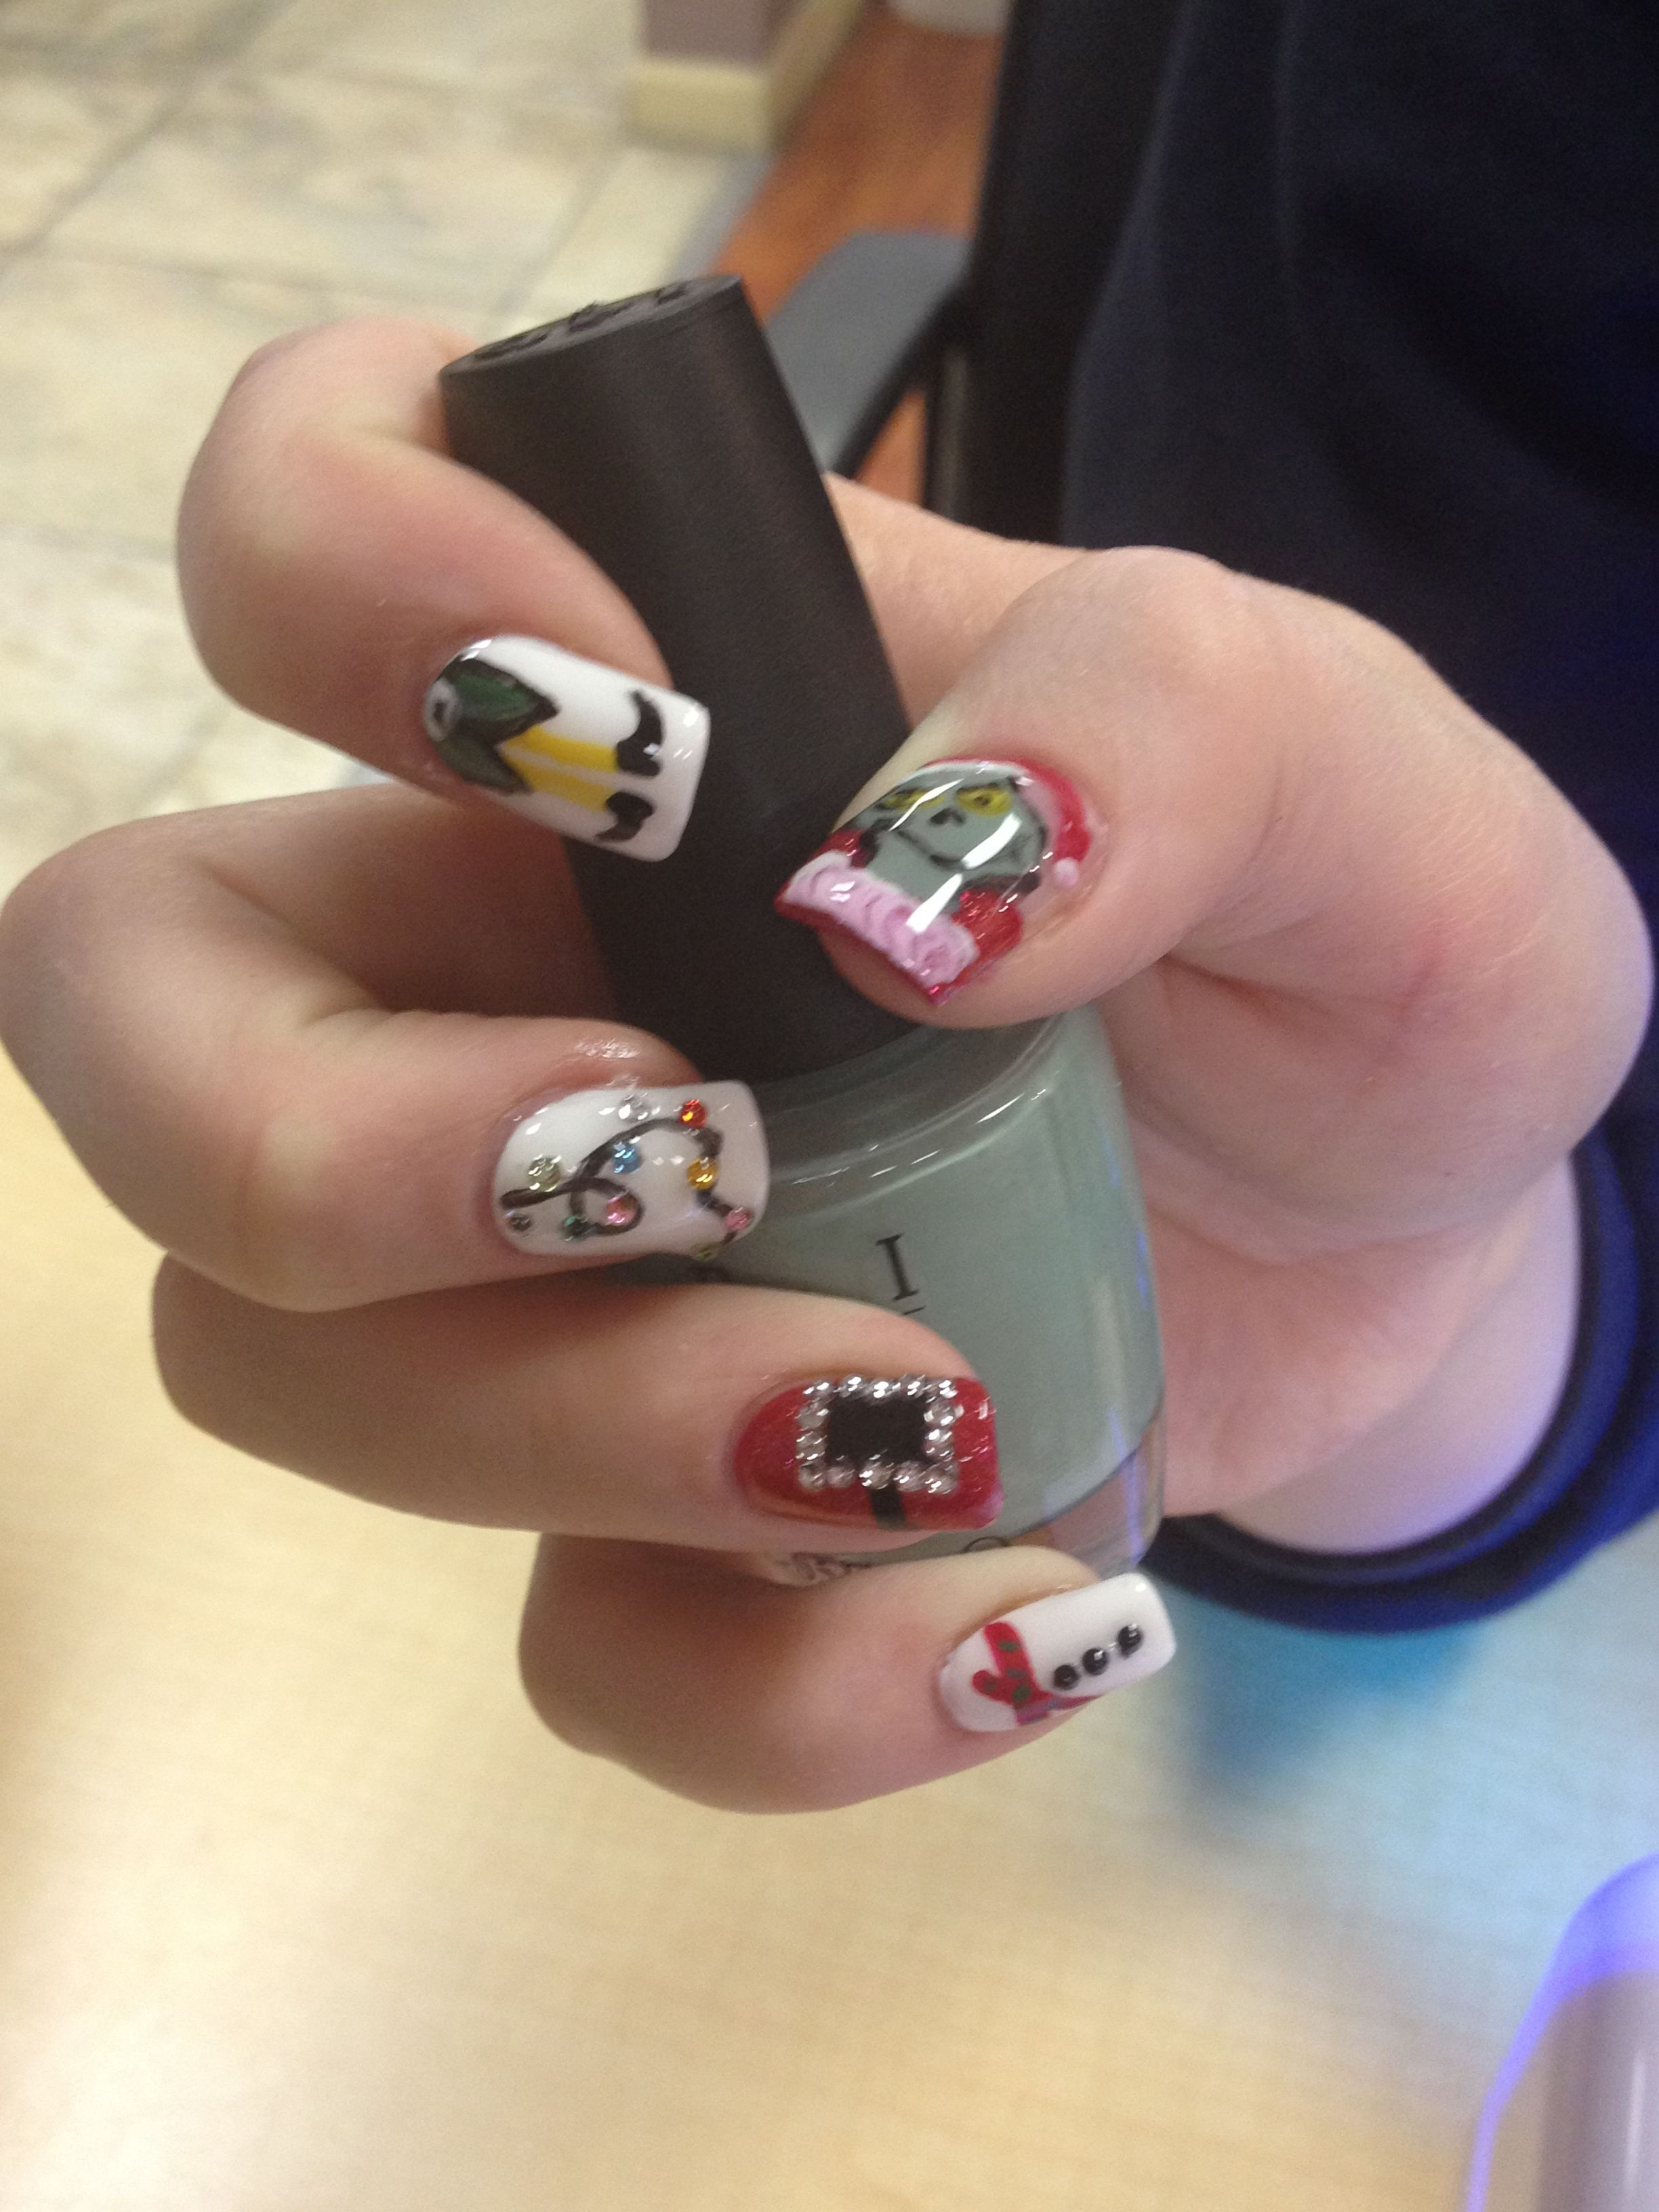 Nail Art By Theresa Jiannotti At Hello Gorgeous Salon And Day Spa In